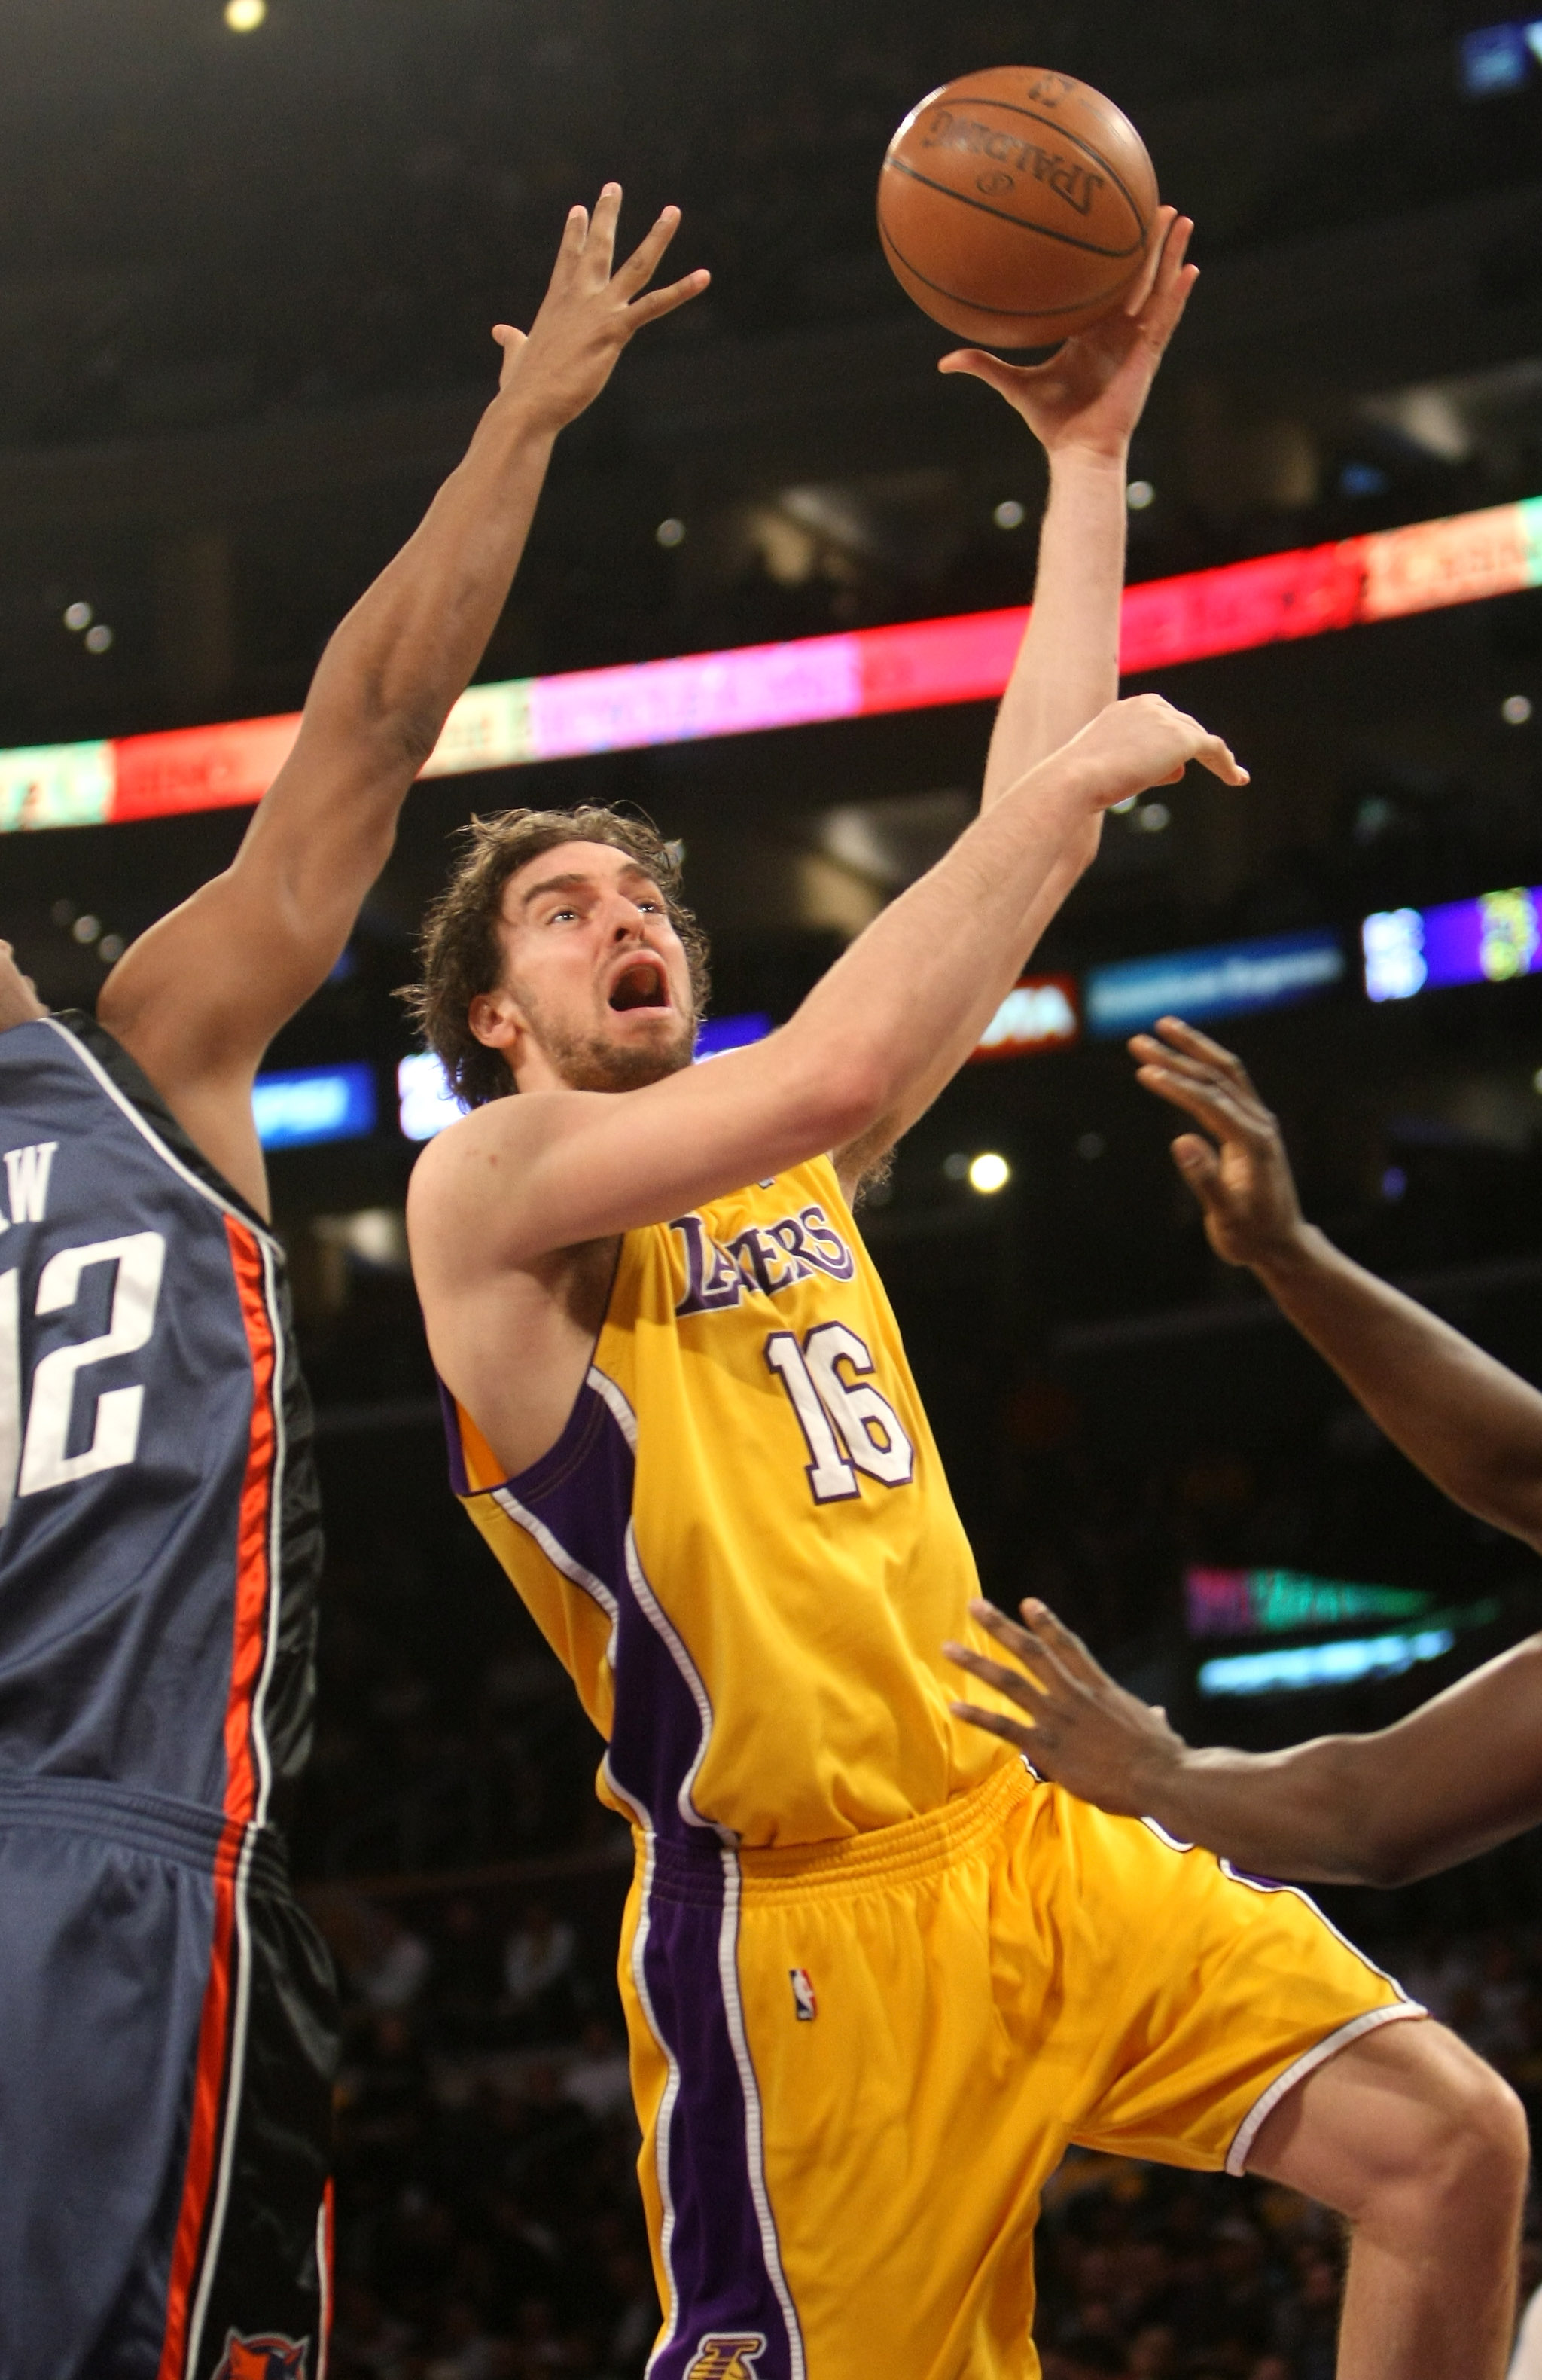 LOS ANGELES - JANUARY 27: Pau Gasol #16 of the Los Angeles Lakers shoots against the Charlotte Bobcats on January 27, 2009 at Staples Center in Los Angeles, California.   NOTE TO USER: User expressly acknowledges and agrees that, by downloading and/or usi